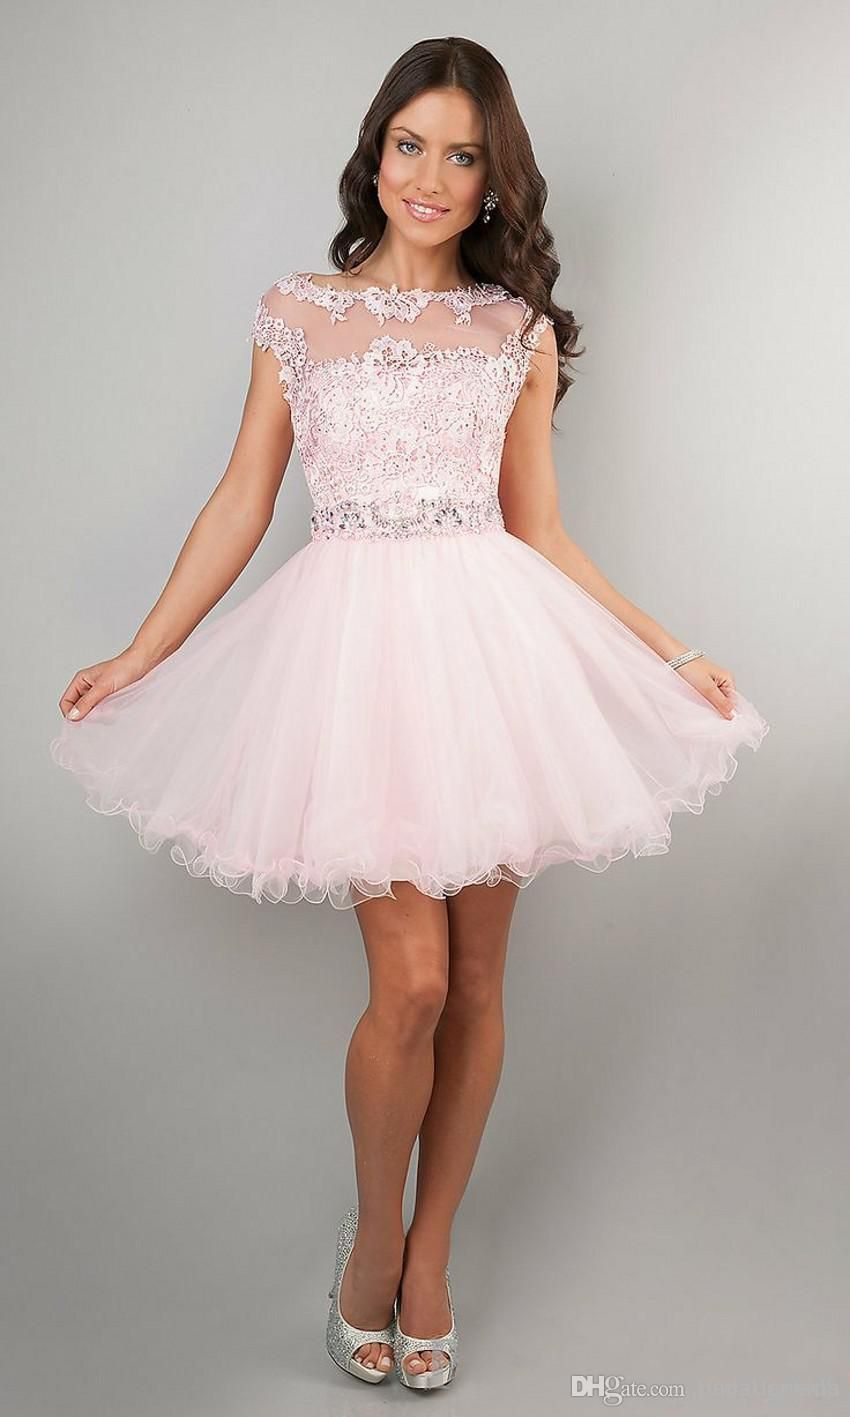 d017d4ba51e graduation dresses for 8th grade with sleeves - Google Search ...